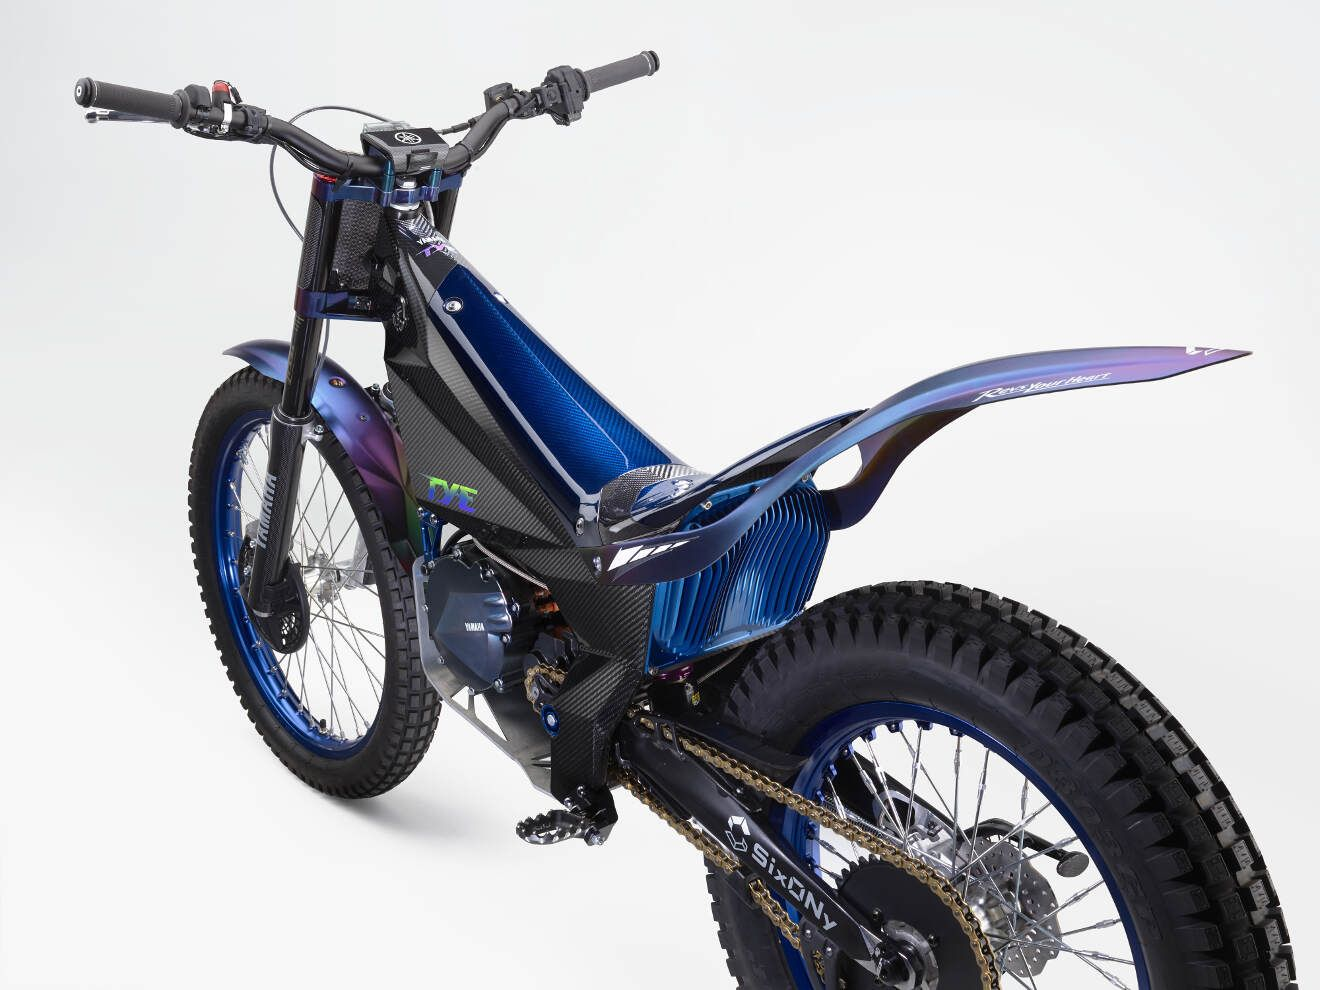 Yamaha Electric Motorcycle >> Yamaha Ty E Electric Trial Bike To Compete In Fim Trial E